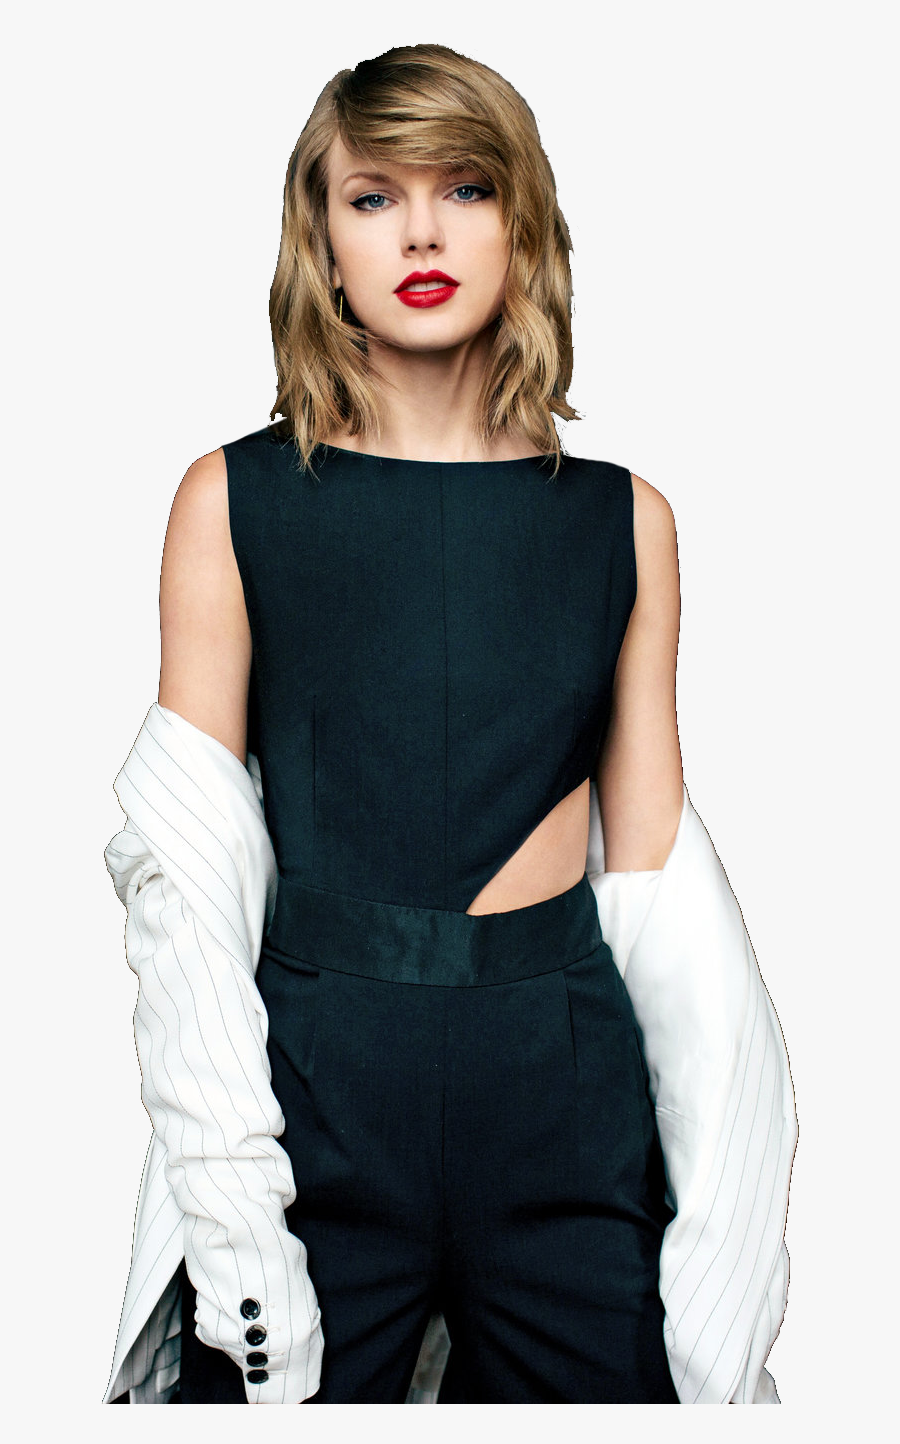 Blue Taylor Swift - Taylor Swift Image Png, Transparent Clipart